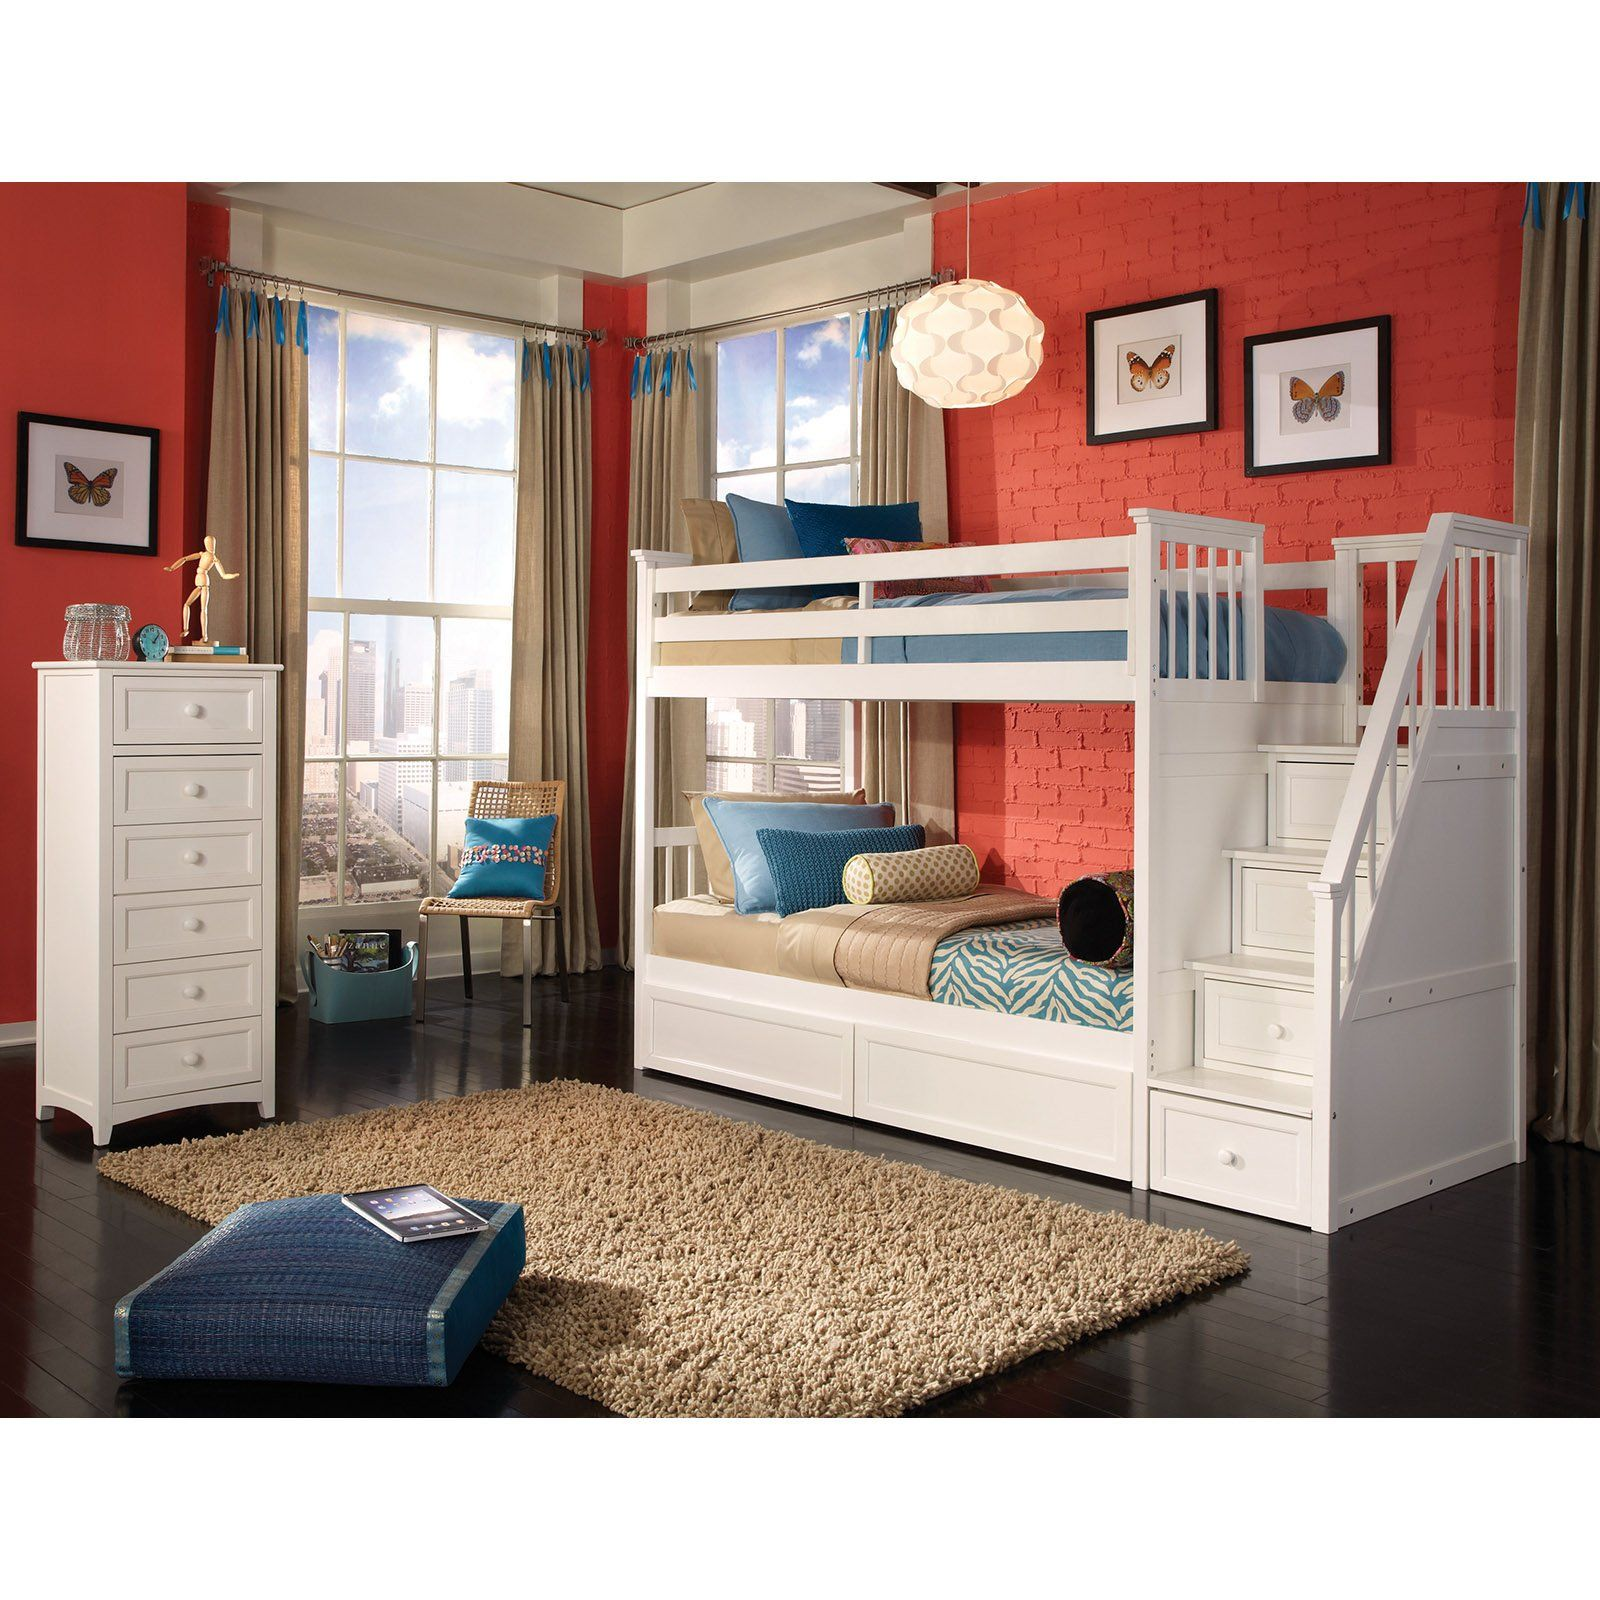 Schoolhouse Twin Over Twin Stairway Bunk Bed | Www.simplybunkbeds.com